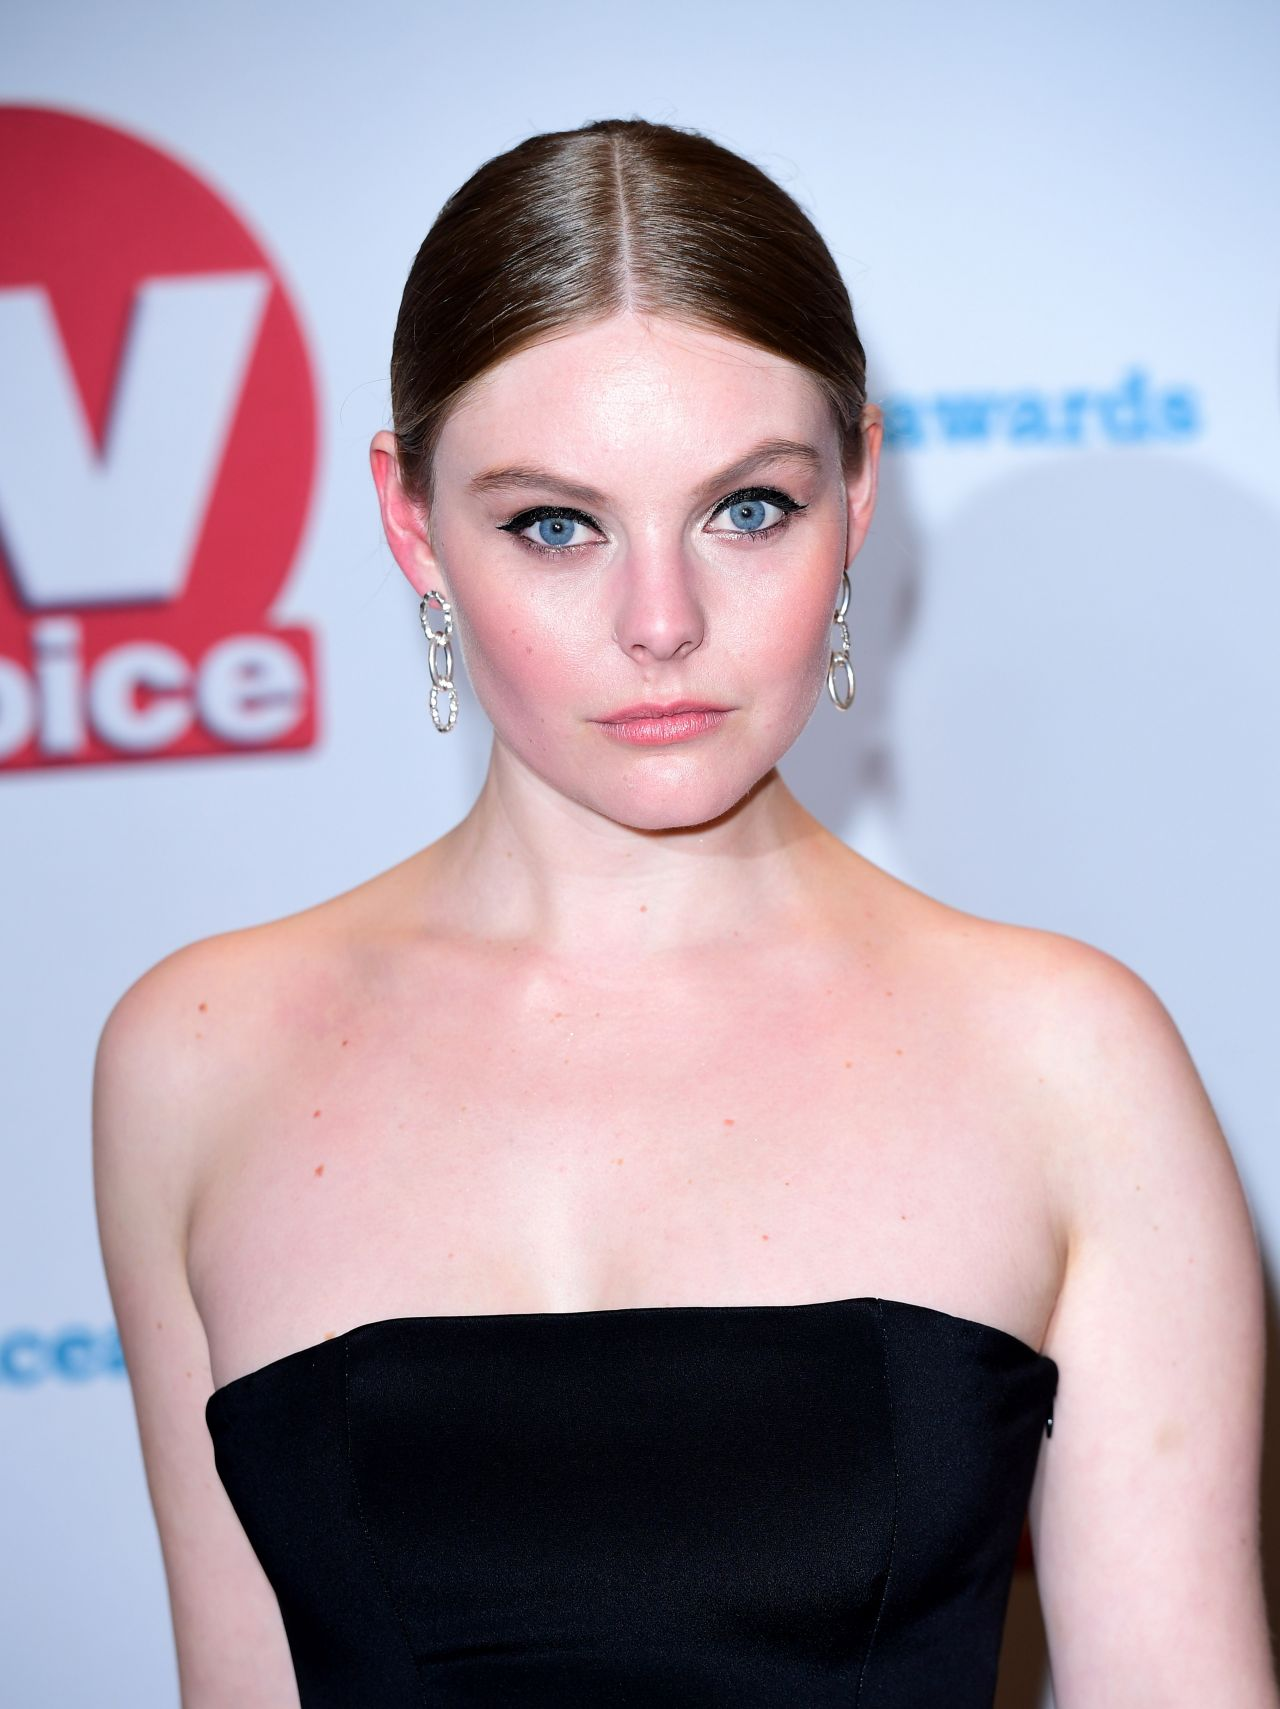 Nell Hudson Tv Choice Awards In London 09 04 2017